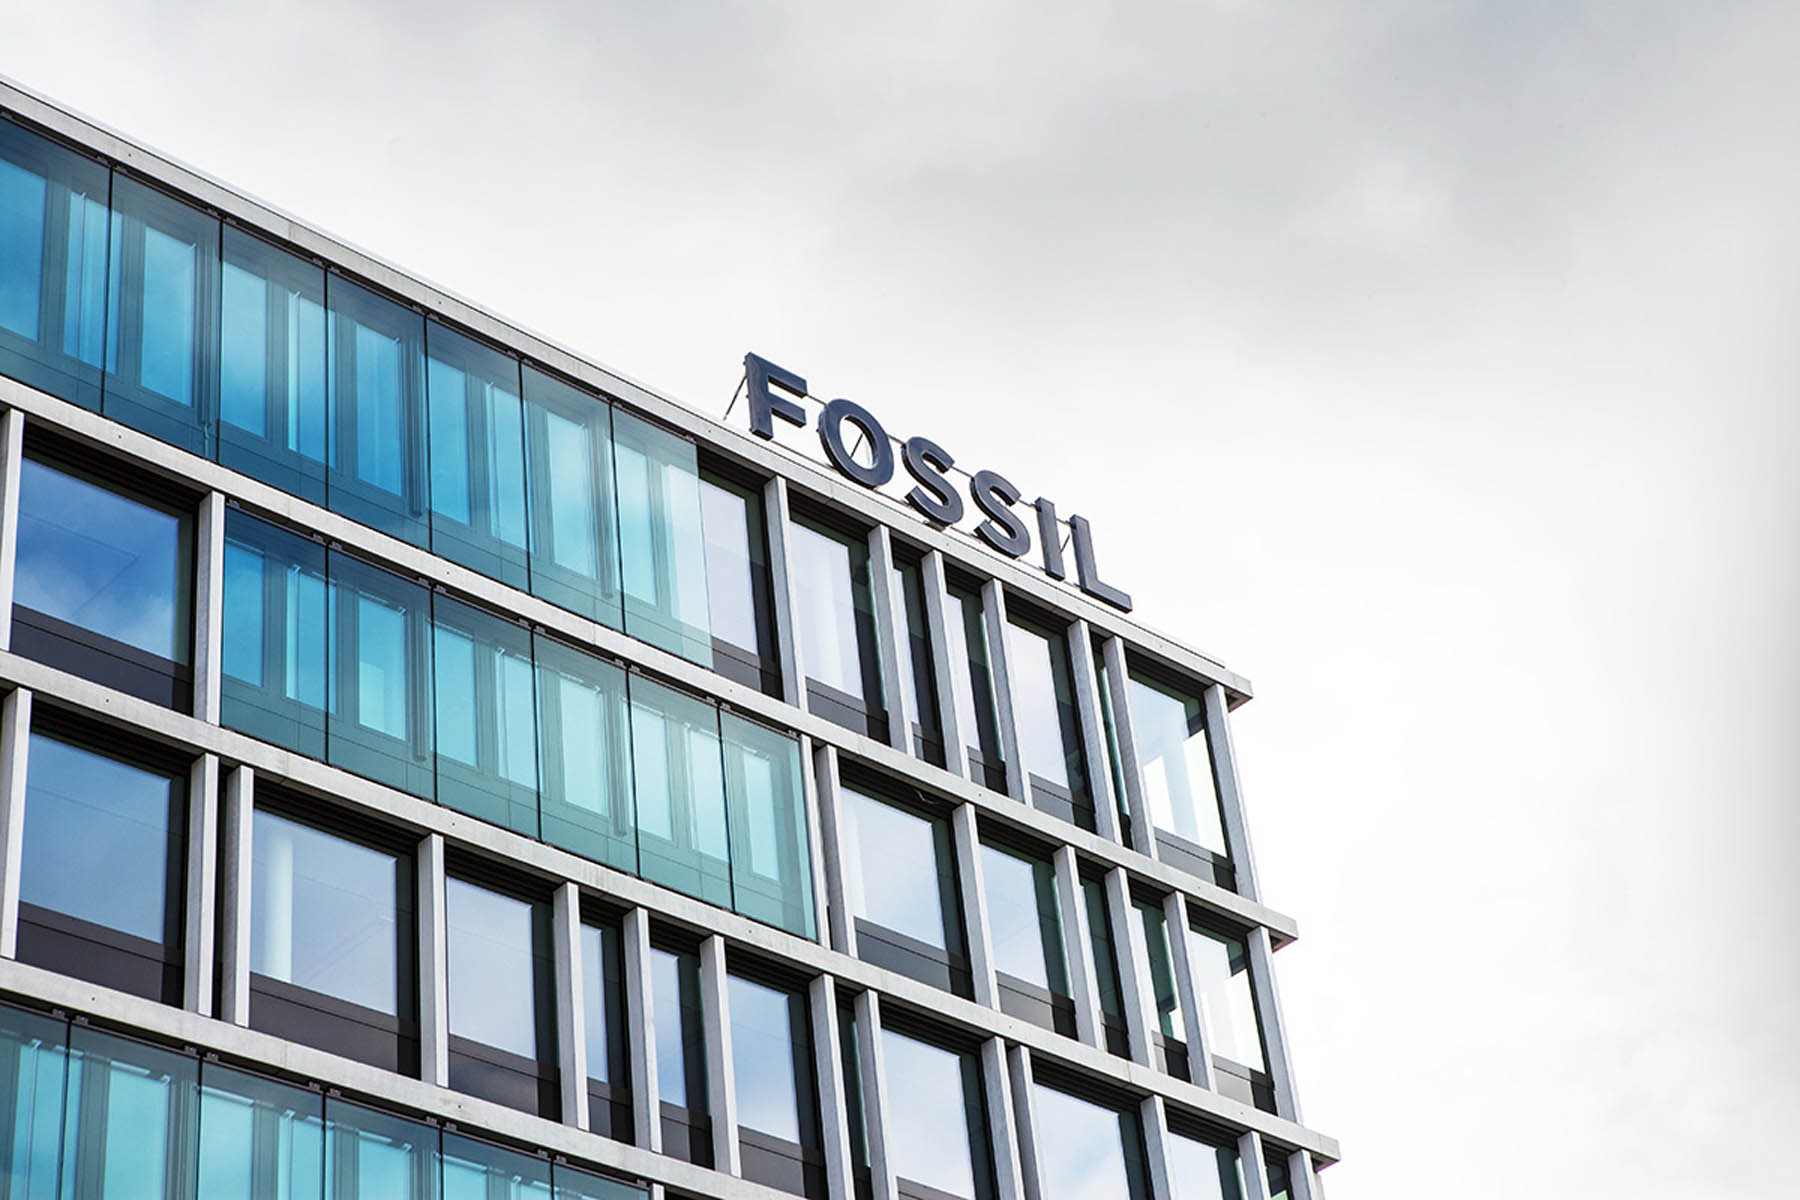 Basel Headquarters Fossil Group Rg 03 Exterior